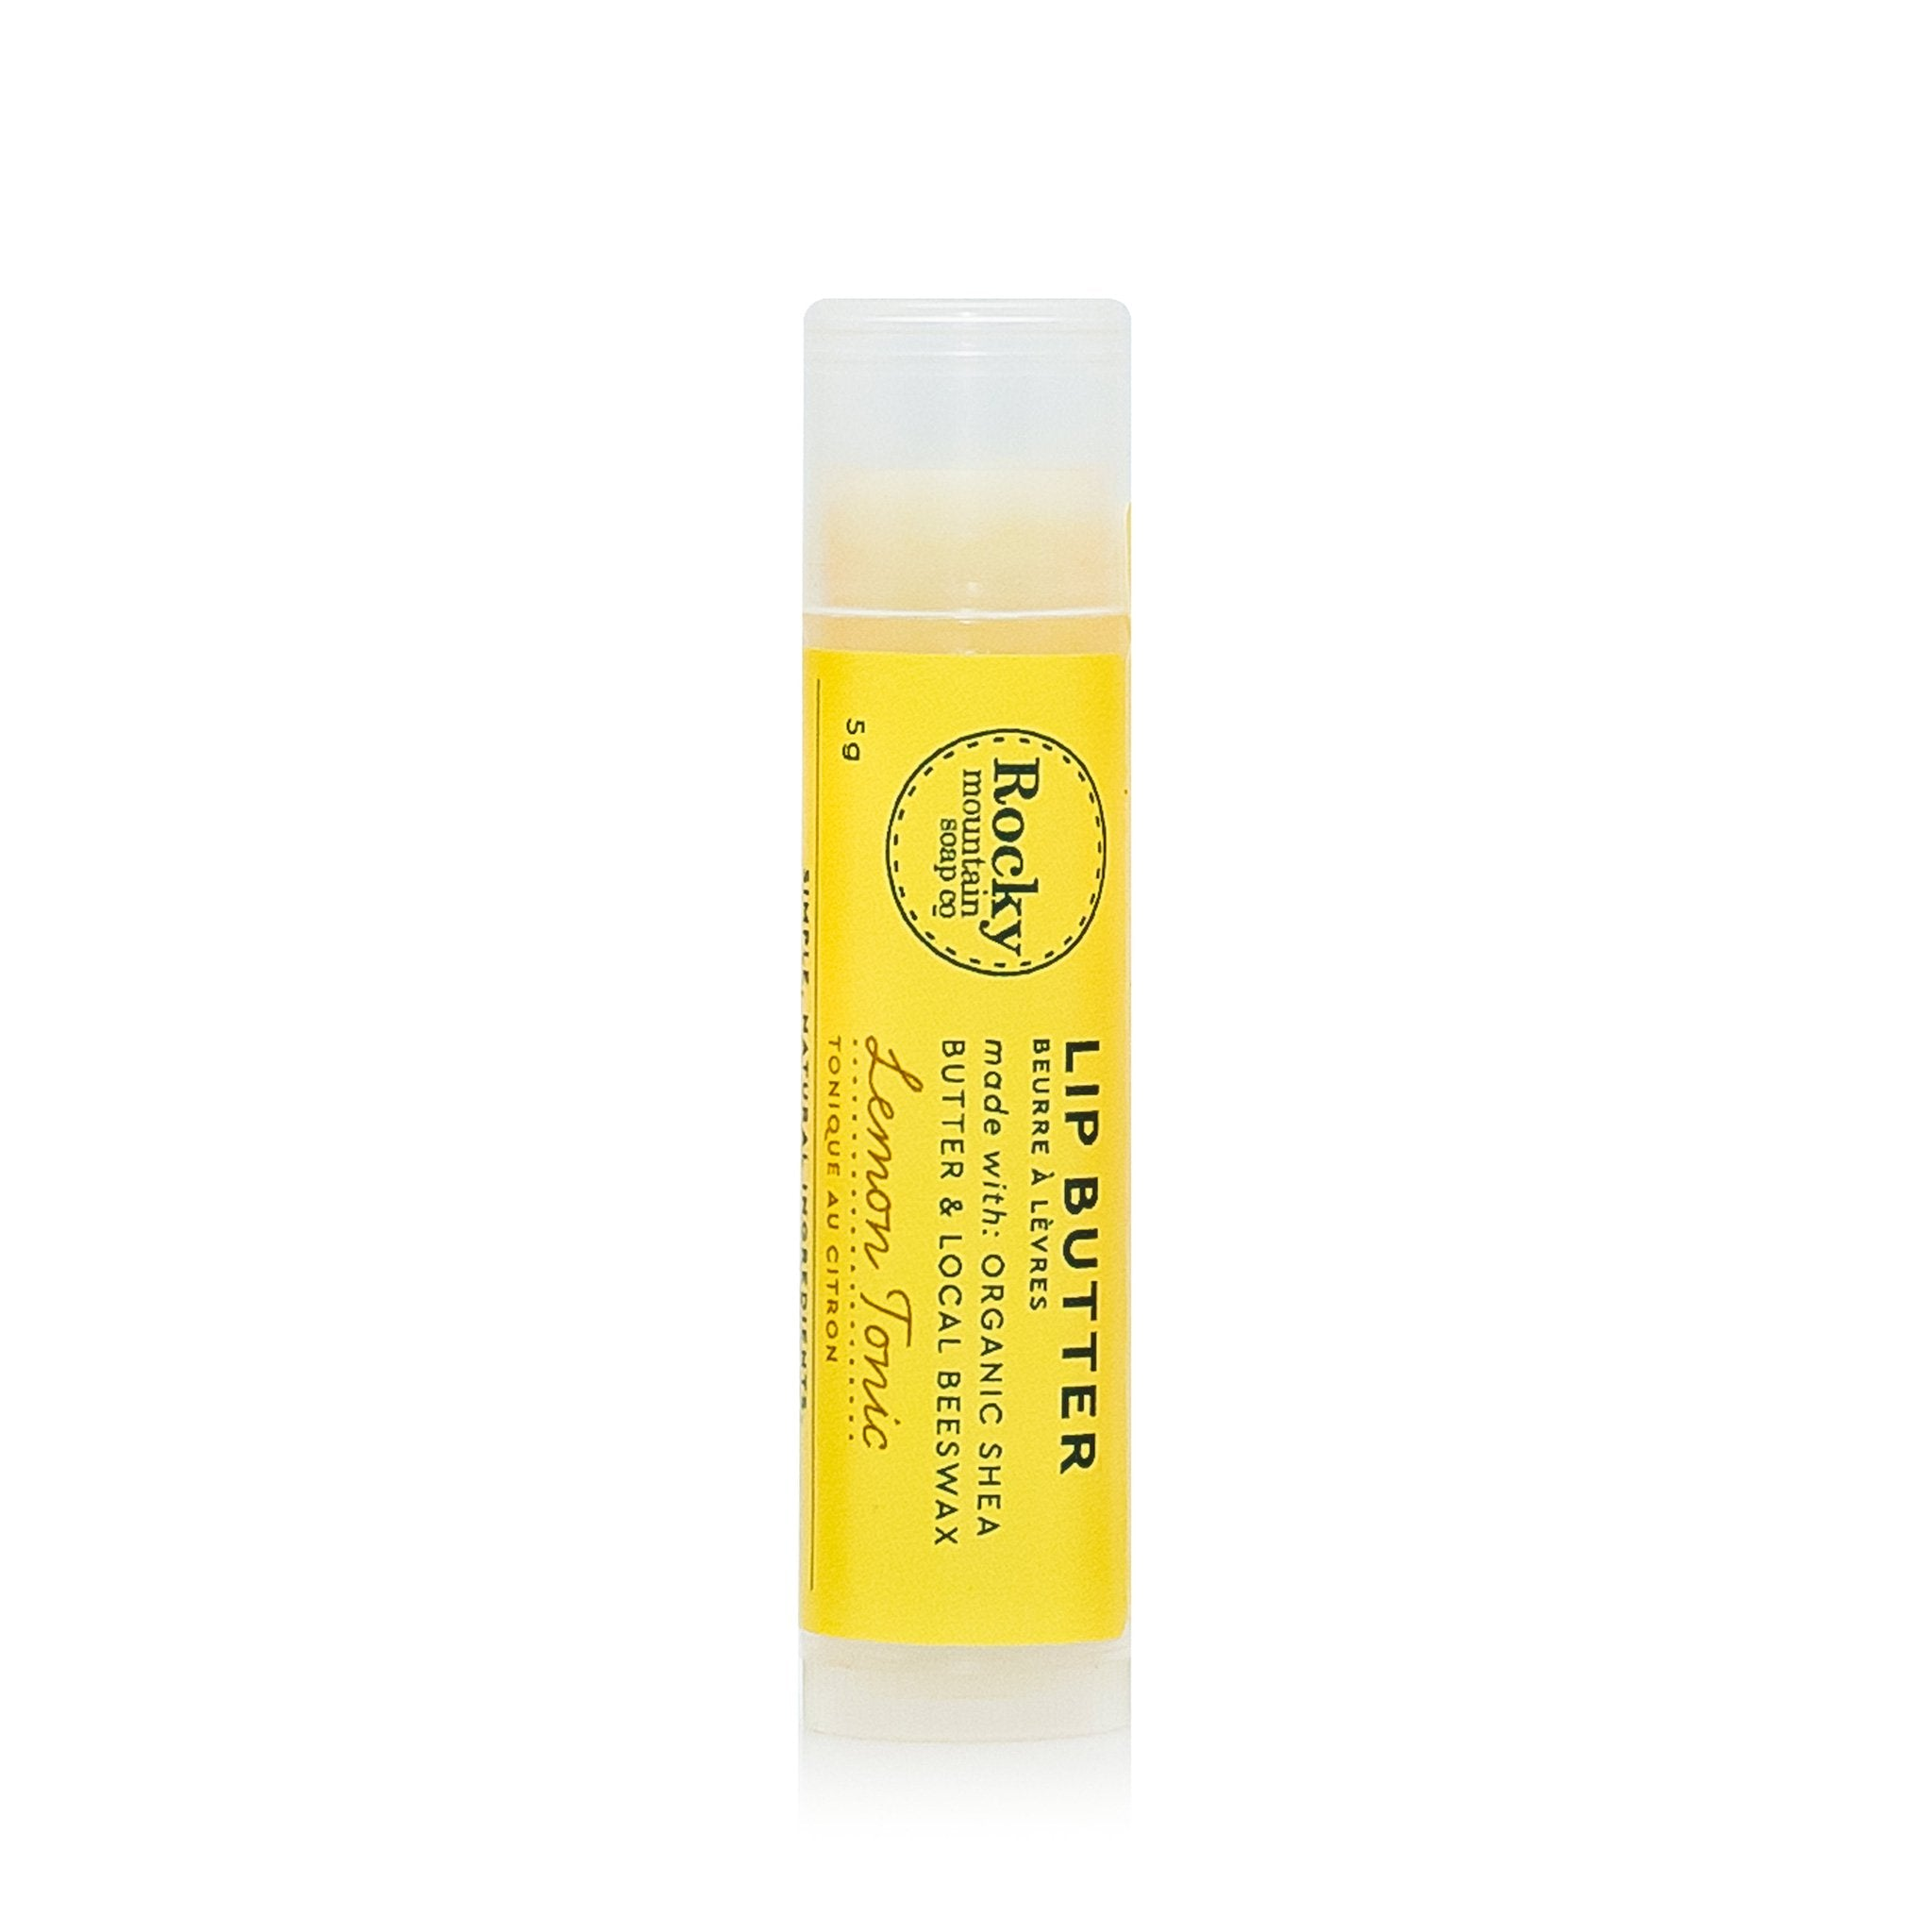 Rocky Mountain Soap Company - Lemon Tonic Lip Butter Canadian Made Lip Care All Things Being Eco